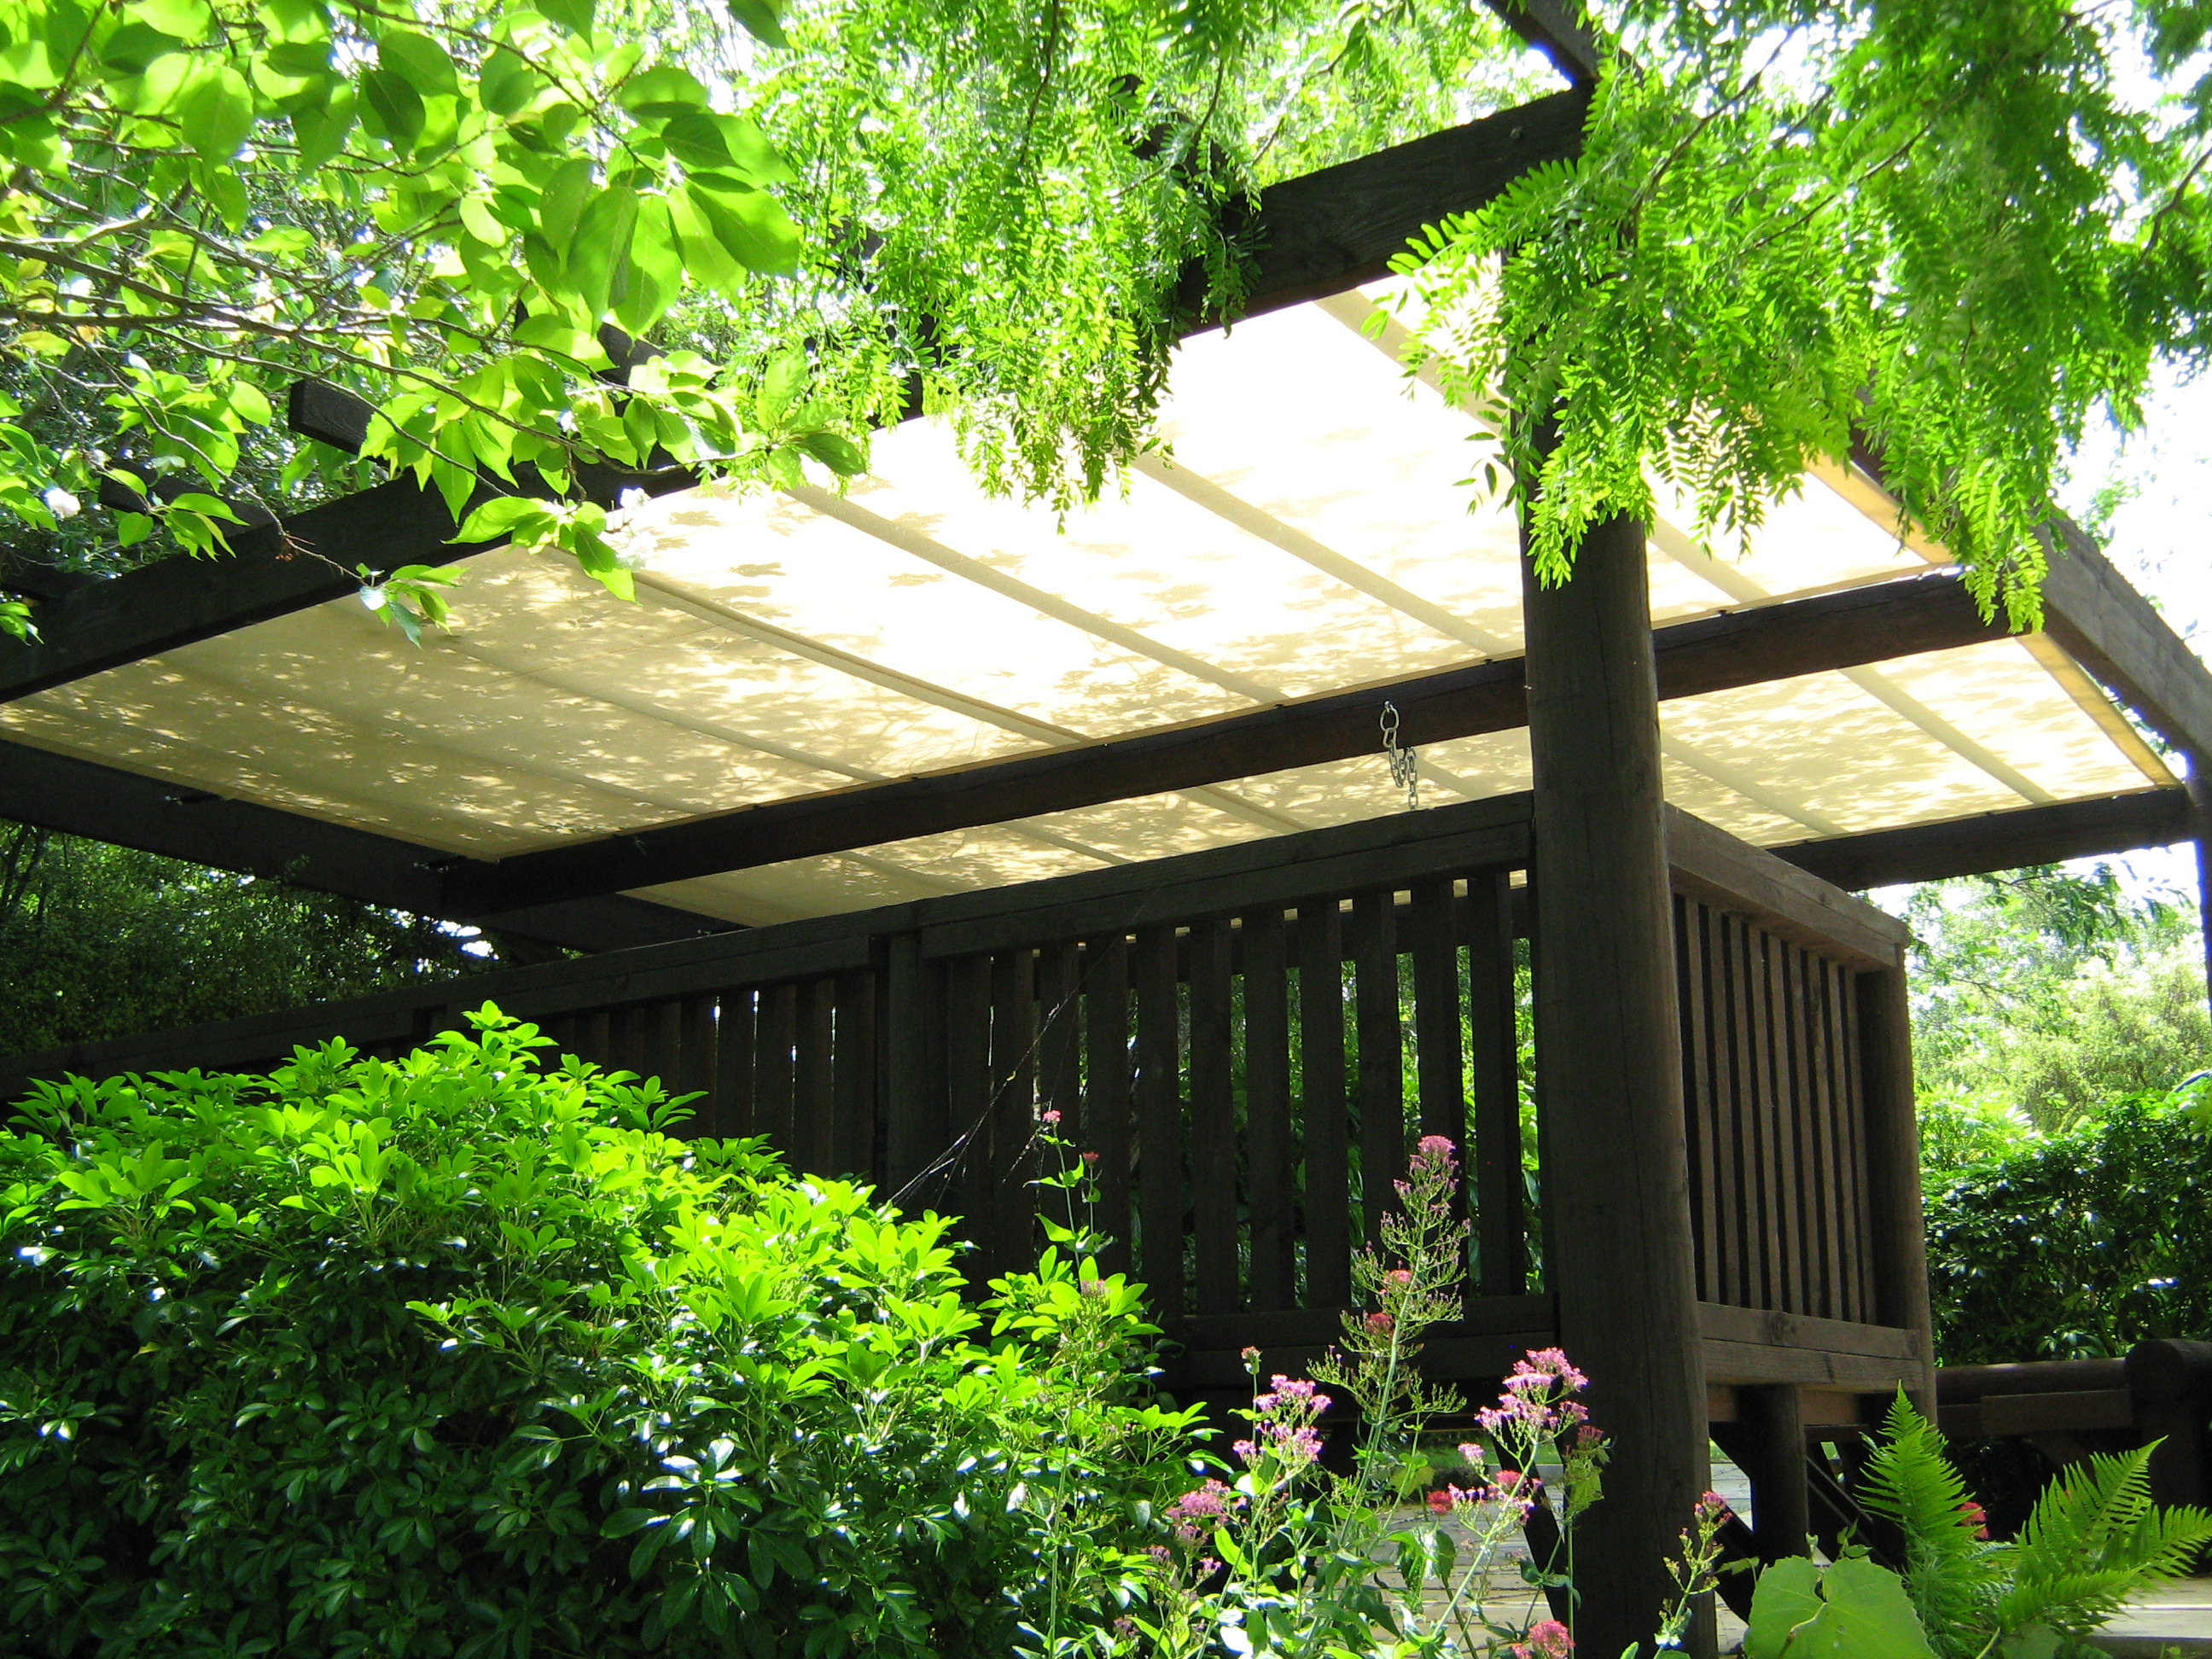 Weatherproof Car Cover ... Patio Trellis Arbor Cover Ideas Imag Pictures to pin on Pinterest